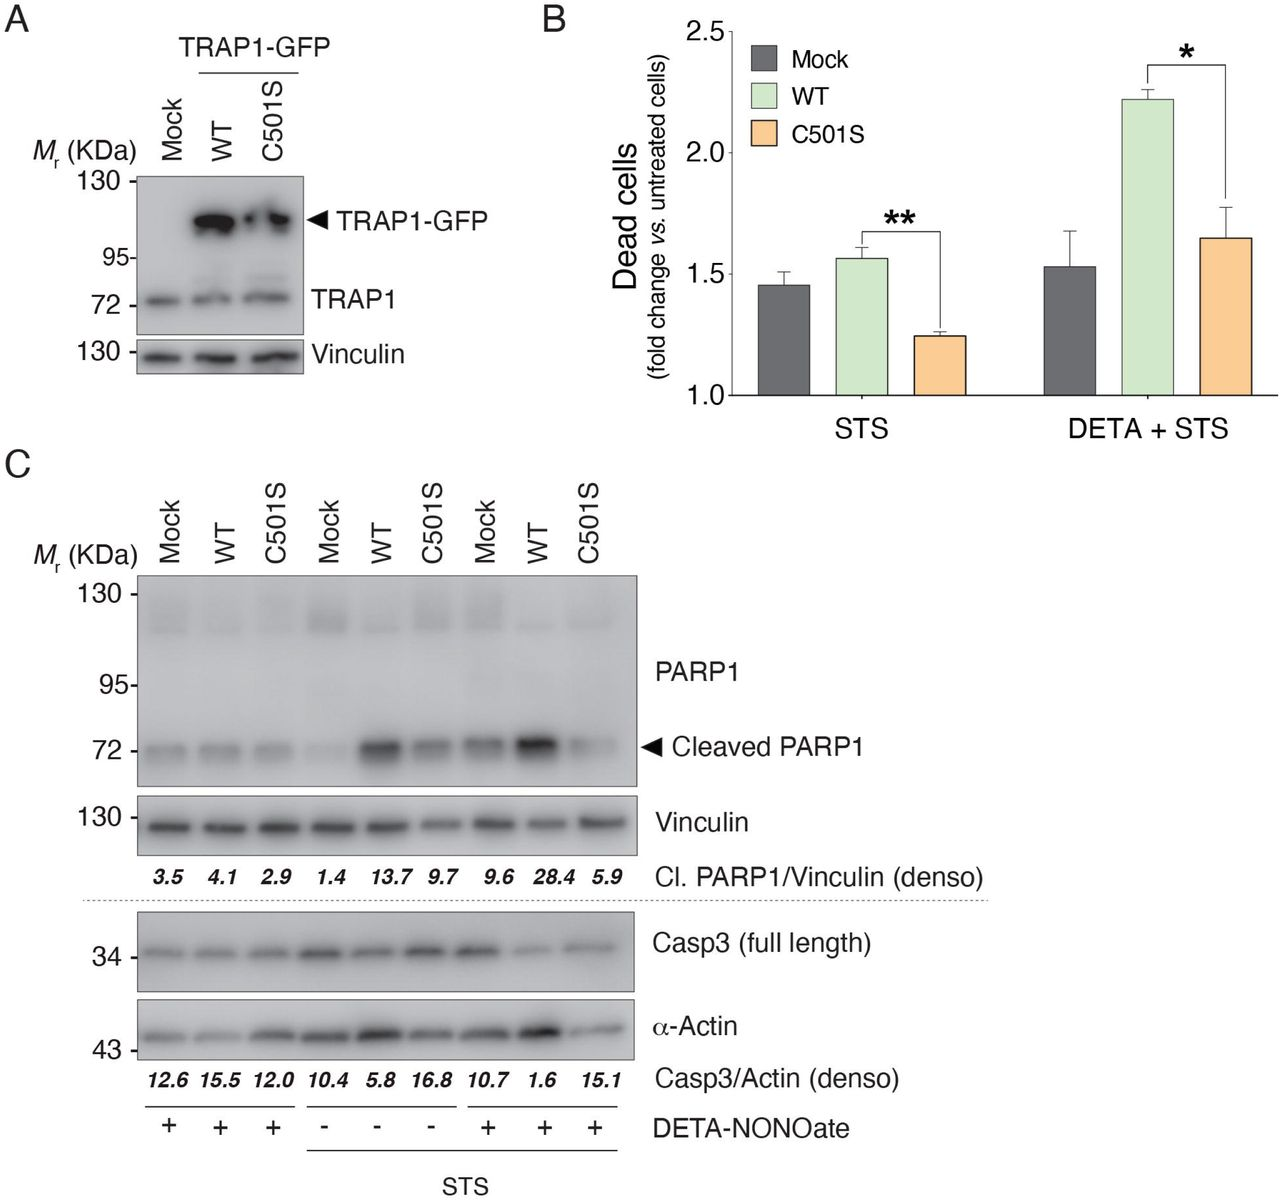 TRAP1 C501S mutant exerts protective role towards staurosporine-induced cell death A ) Western blot analyses of HeLa cell lysates were performed to check the expression levels of WT and C501S mutant forms of GFP-fused TRAP1 (TRAP1-GFP) which can be discriminated by the endogenous variant (TRAP1) by the use of an anti-TRAP1 antibody. Western blot shown is representative of at least n = 3 independent experiments giving similar results.  B ) The number of dead cells was evaluated by Trypan blue exclusion test in control cells transfected with an empty vector (Mock), as well as in cell expressing TRAP1 WT  (WT) and TRAP1 C501S  (C501S) treated for 4 h with 200 nM staurosporine (STS), in the presence or absence of the NO donor DETA-NONOate (250 μM, maintained for 22-24 h before STS treatment). Data are shown as fold change of dead cells with respect to untreated cells, and represent the mean ± SEM of n =5 independent experiments done in duplicate. * p  = 0.05; ** p  = 0.01.  C ) Western blot analyses of HeLa cells treated as in (B) were performed to evaluate cleaved PARP1 and pro-caspase 3 (Casp3) protein levels. Vinculin and α-actin were used as loading controls. Densitometric analyses (denso) of PARP1/Vinculin or Casp3/actin are shown below each lane. Western blots shown are representative of at least n = 3 independent experiments giving similar results.